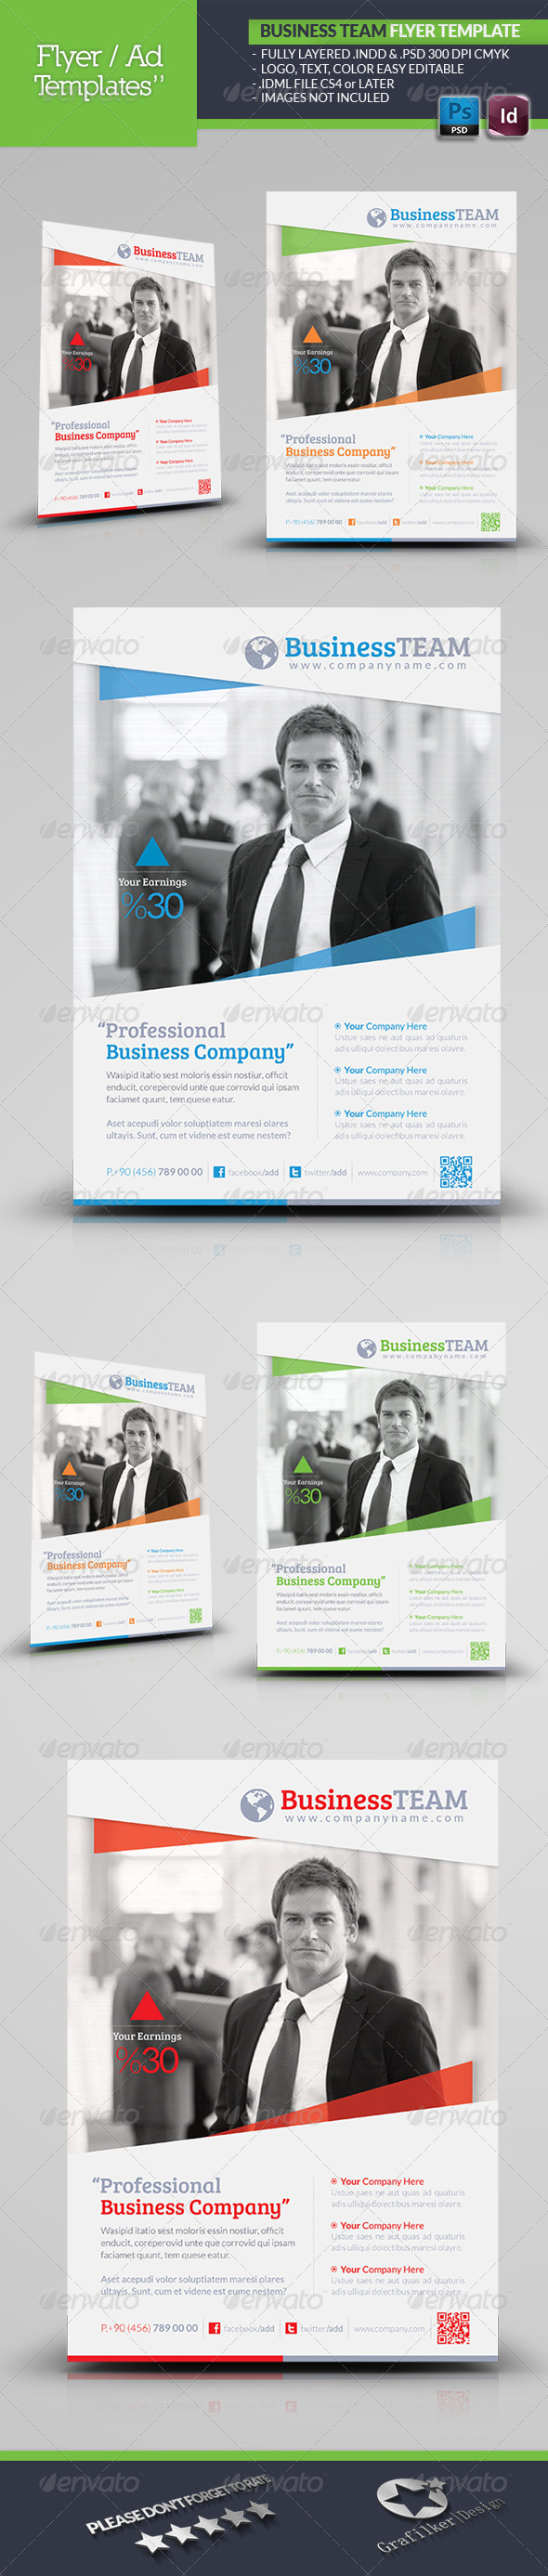 Business Team Flyer Template